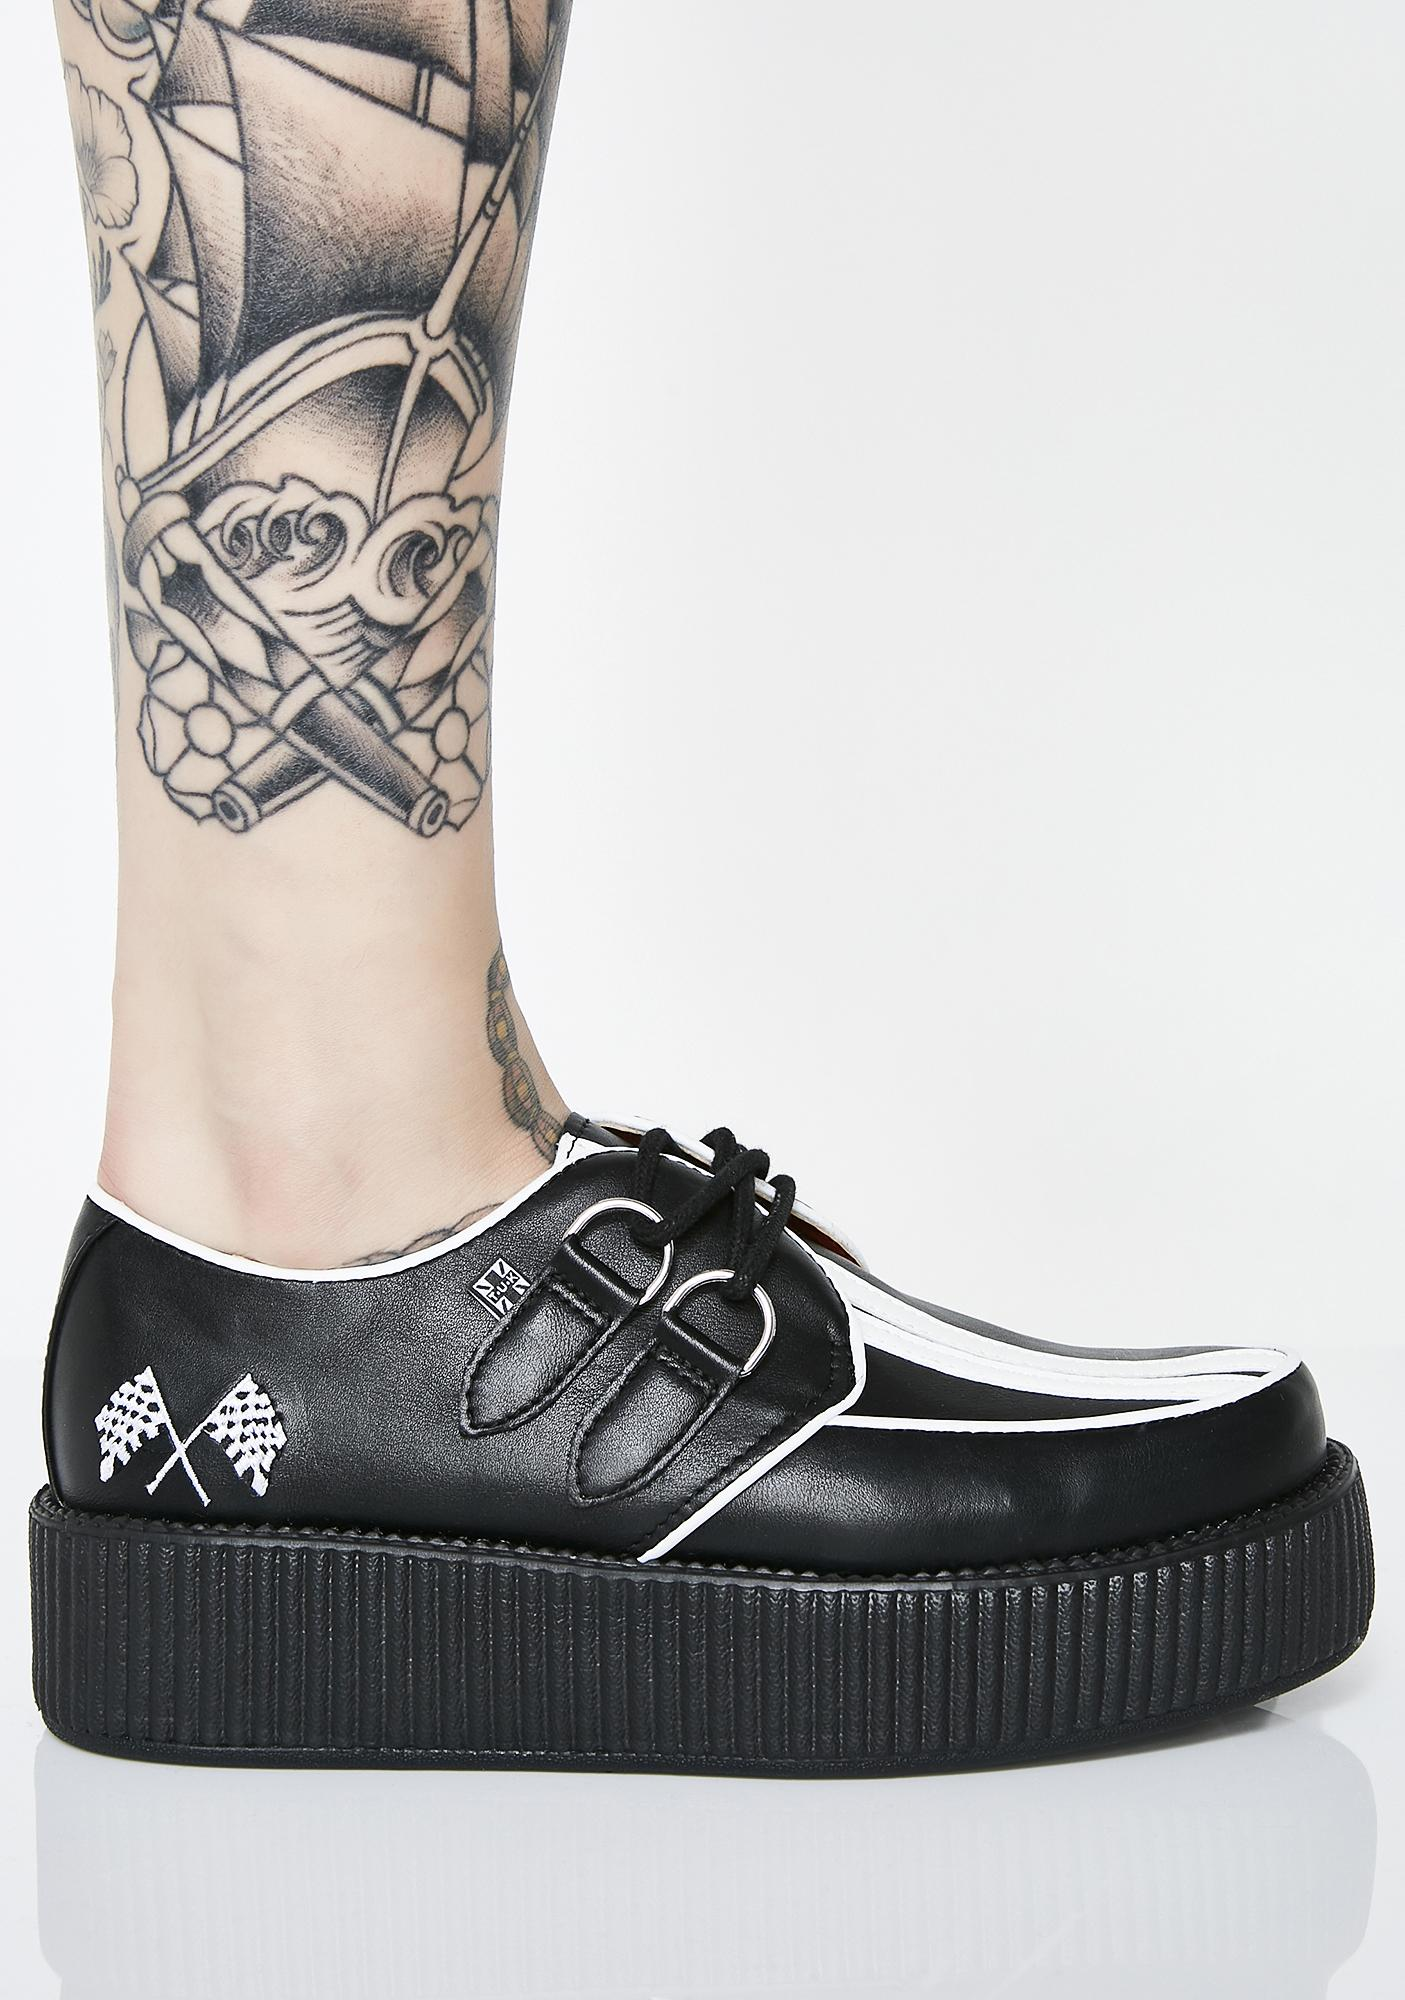 T.U.K. Into The Pit Viva Low Creepers